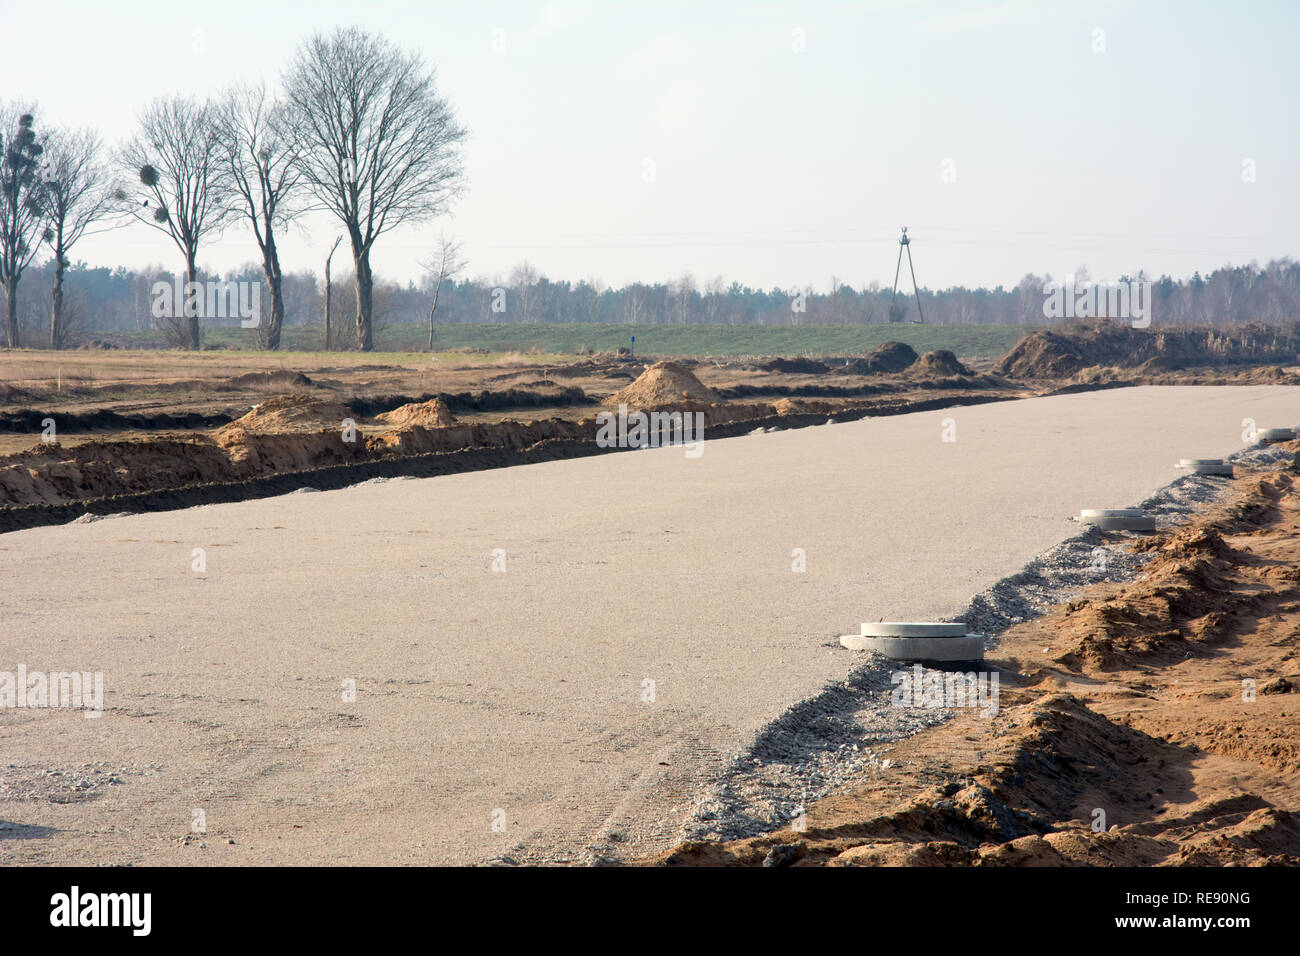 KOWALEWO, KUJAWSKO-POMORSKIE/POLAND - MARCH 11, 2018 - Construction site of S5 highway - gravel substructure with drains - Stock Image